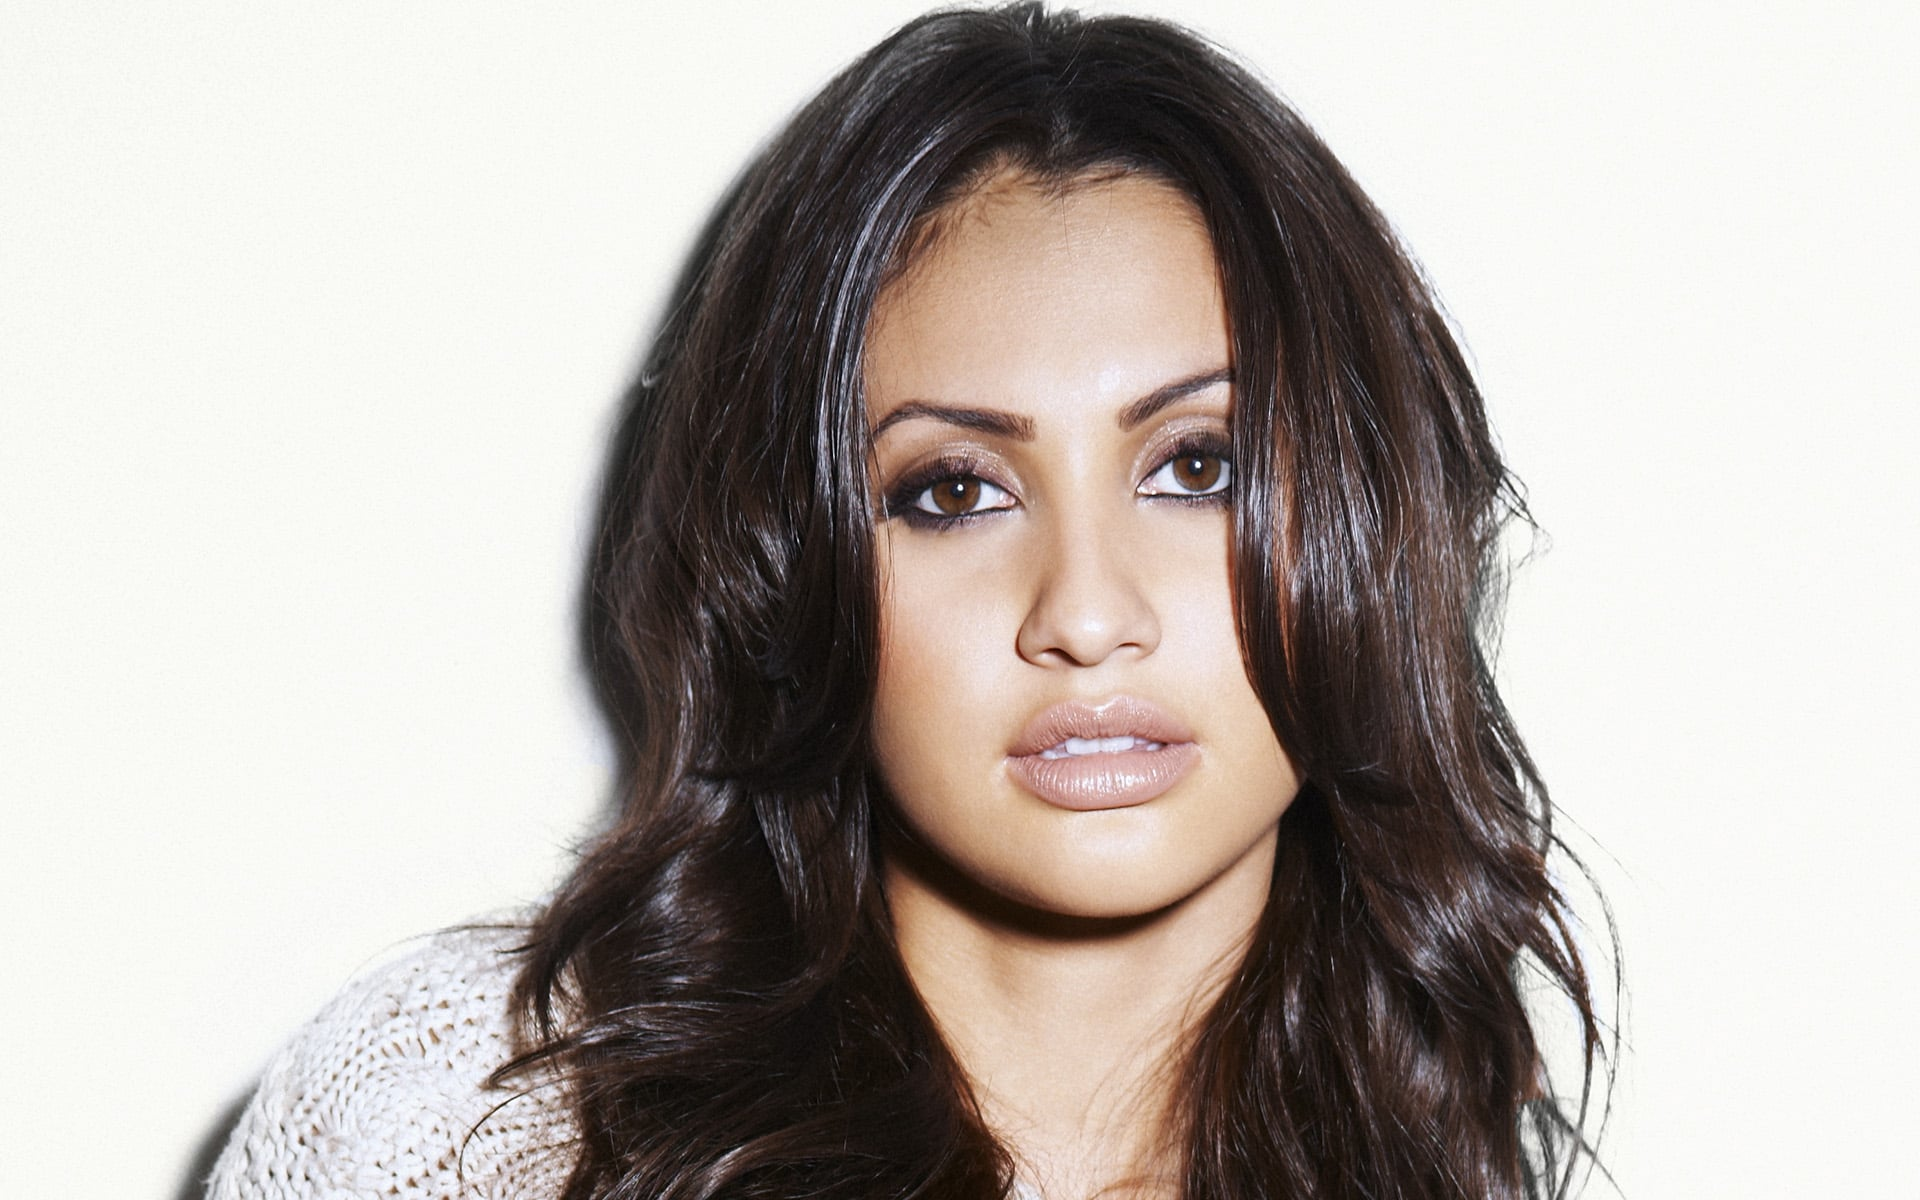 Francia Raisa face wallpapers